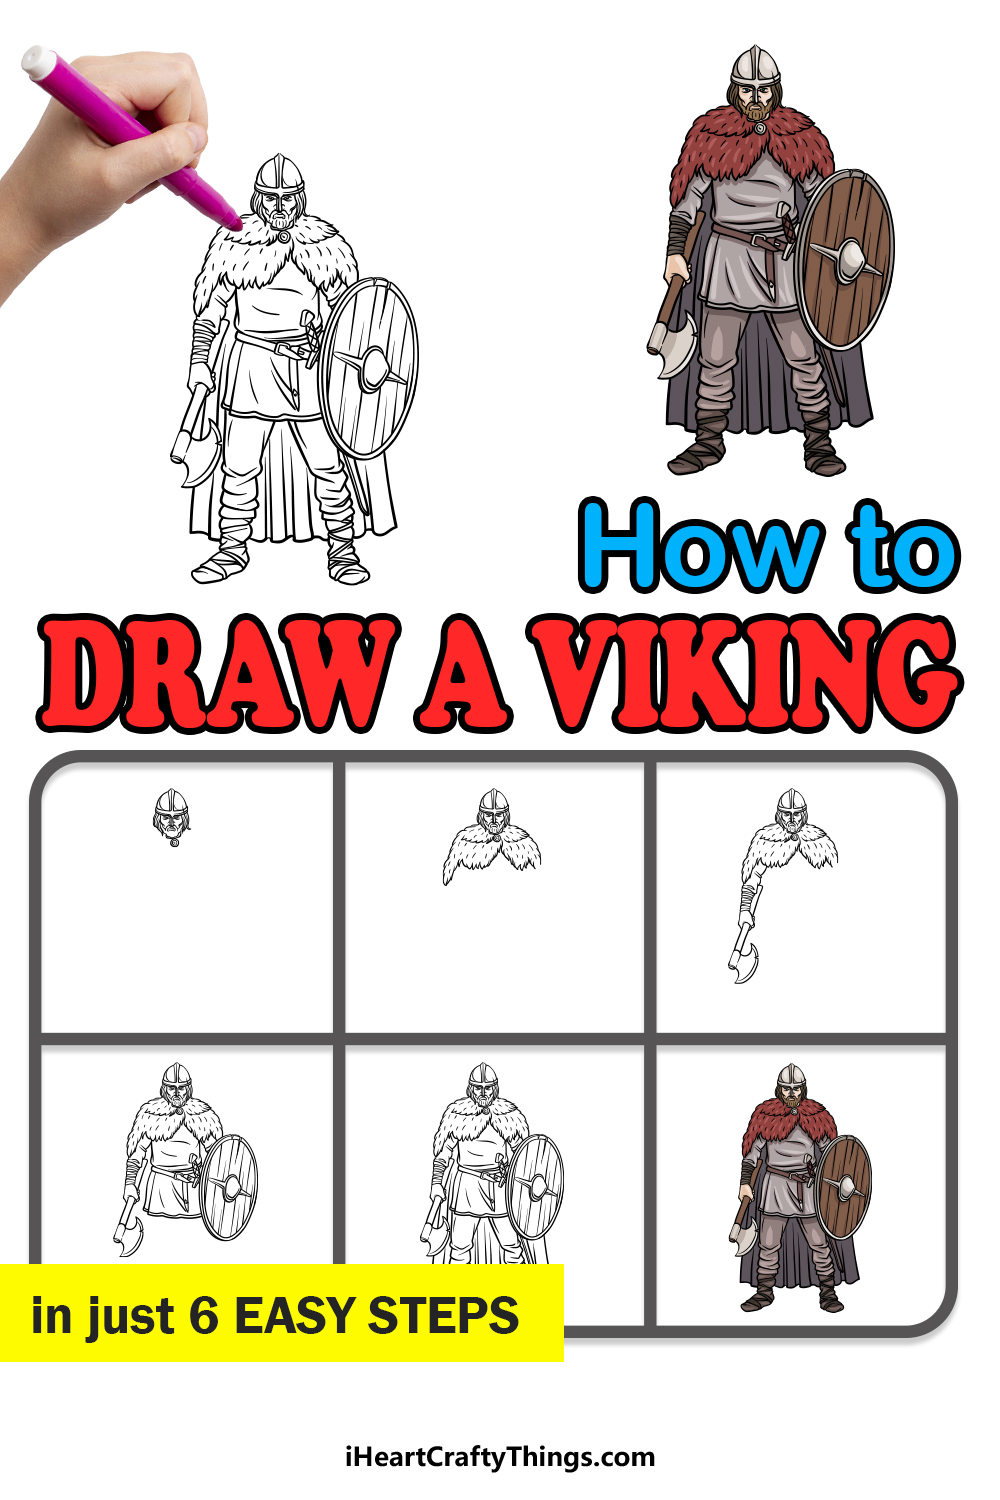 how to draw a viking in 6 easy steps